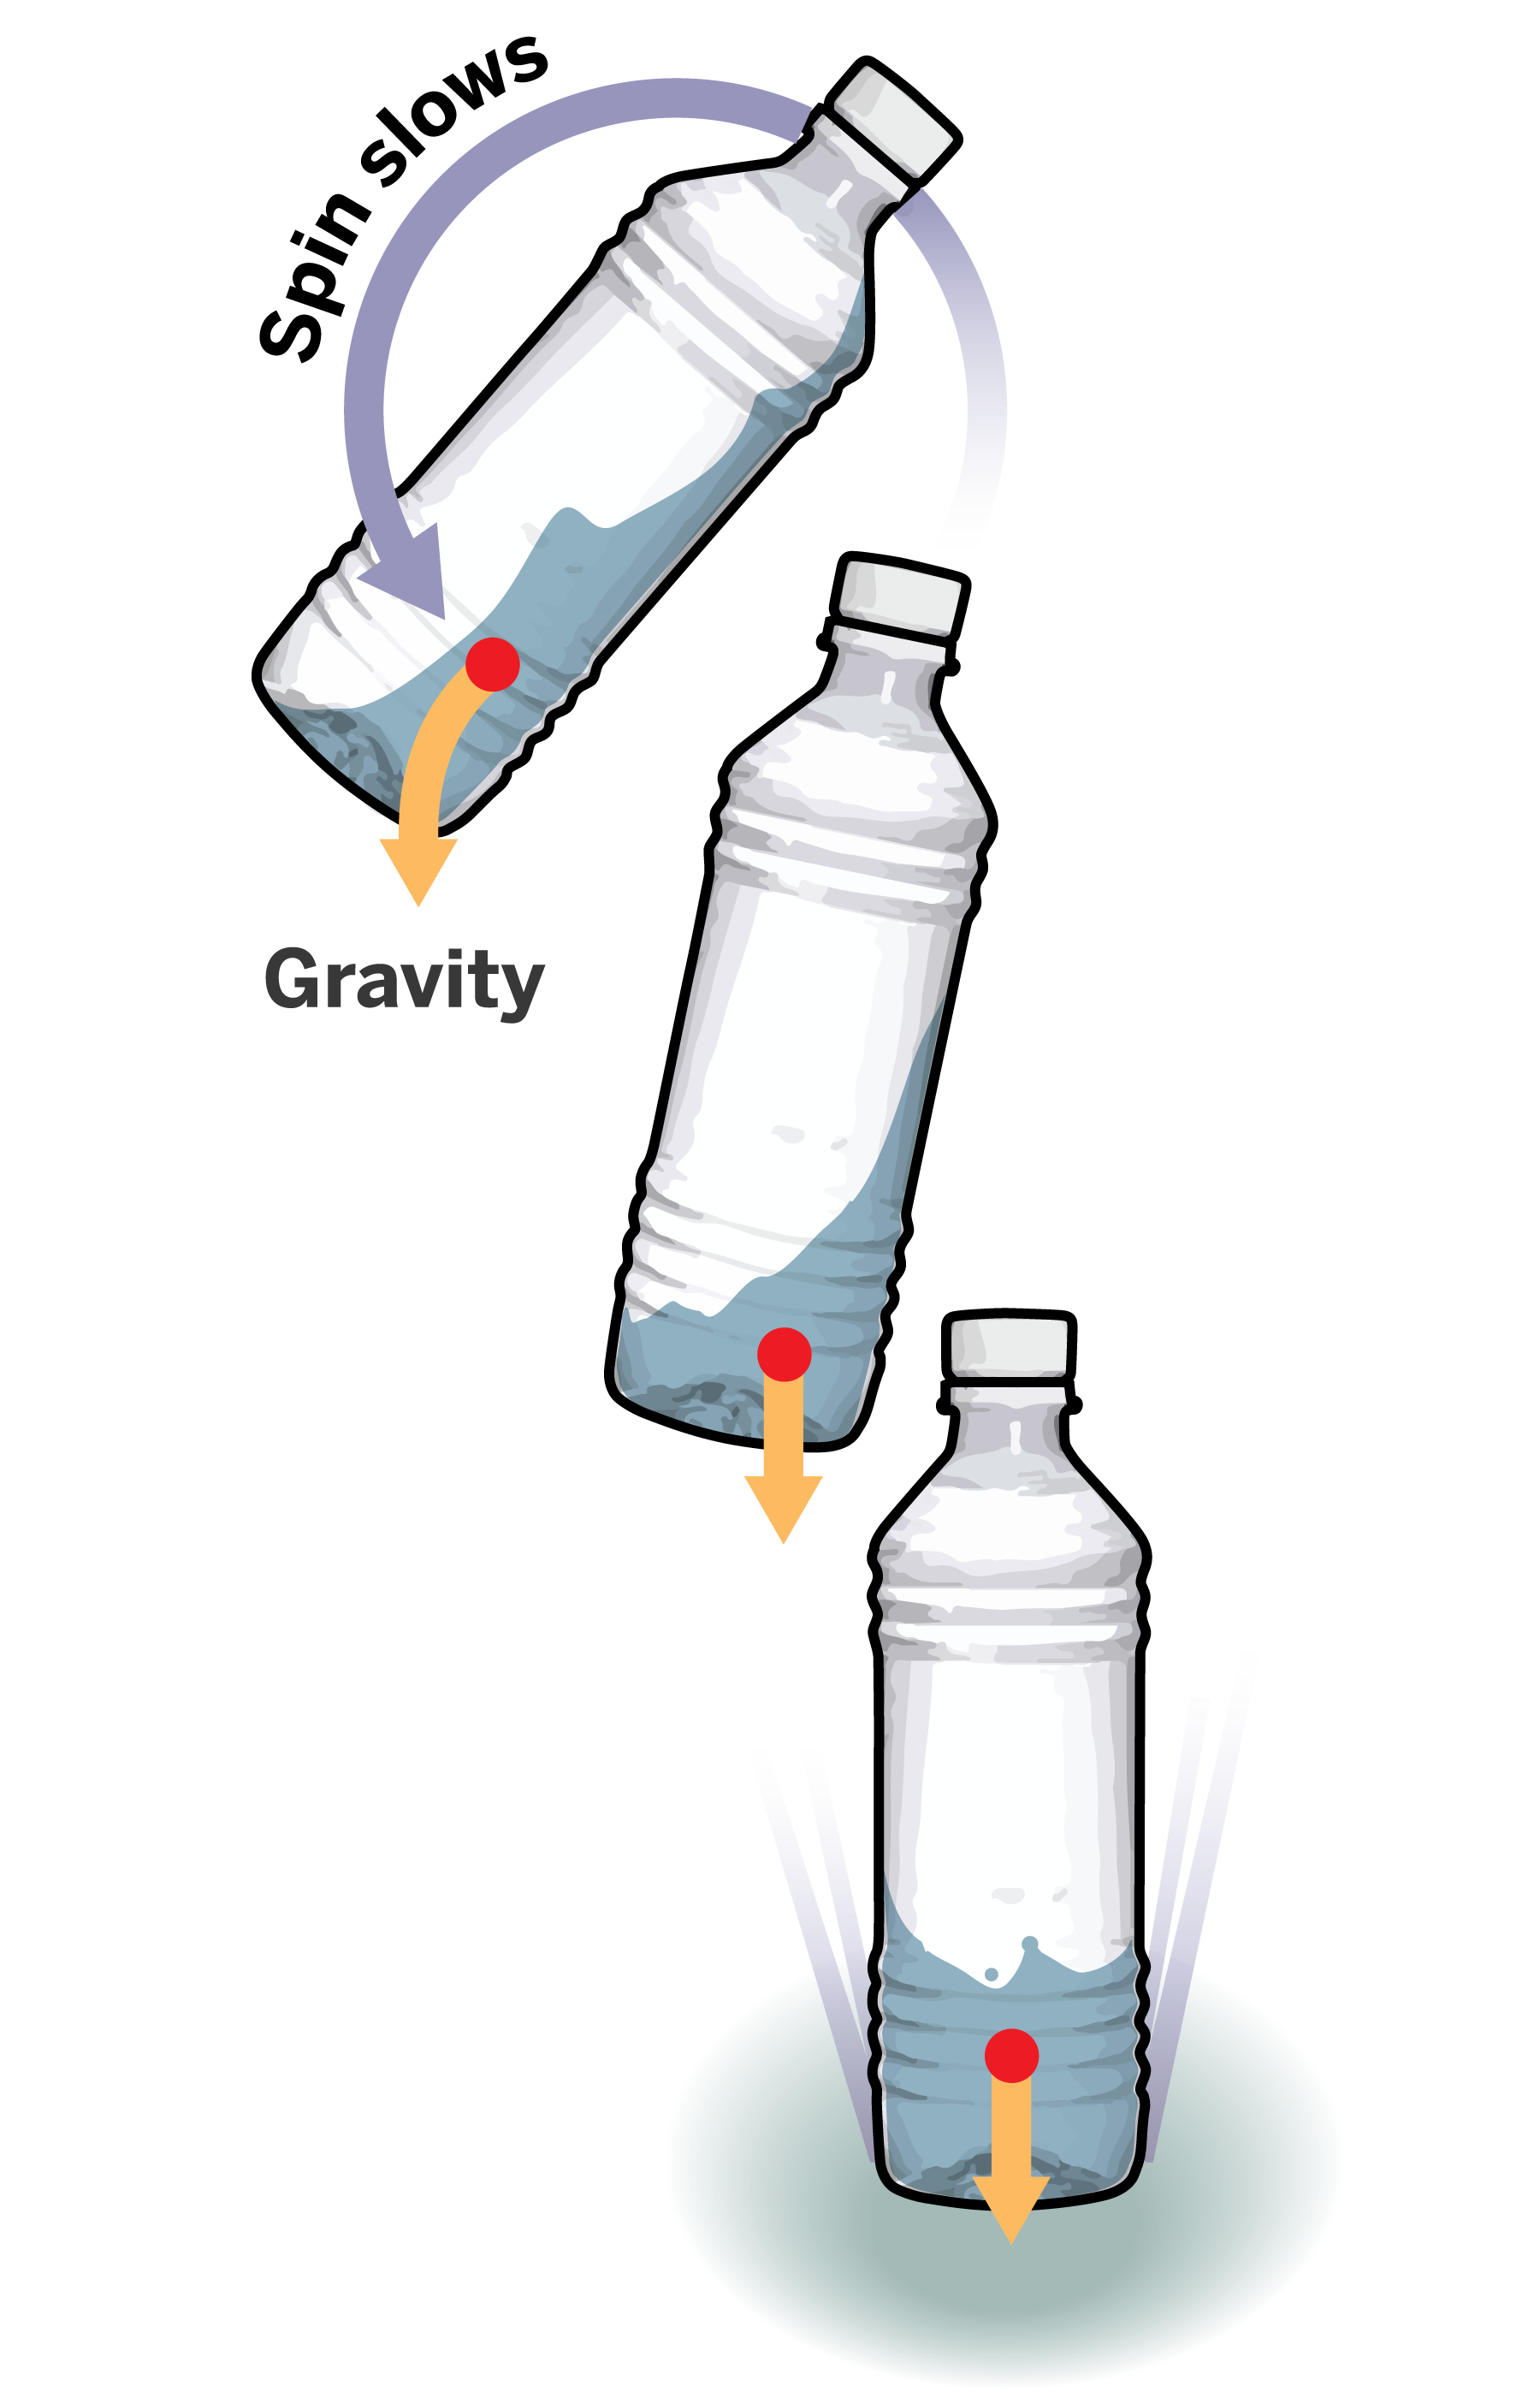 physics of the bottle flip challenge Bottle flip challenge 11 apk for android (comtaifunbottleflip), created by taifun in arcade games.